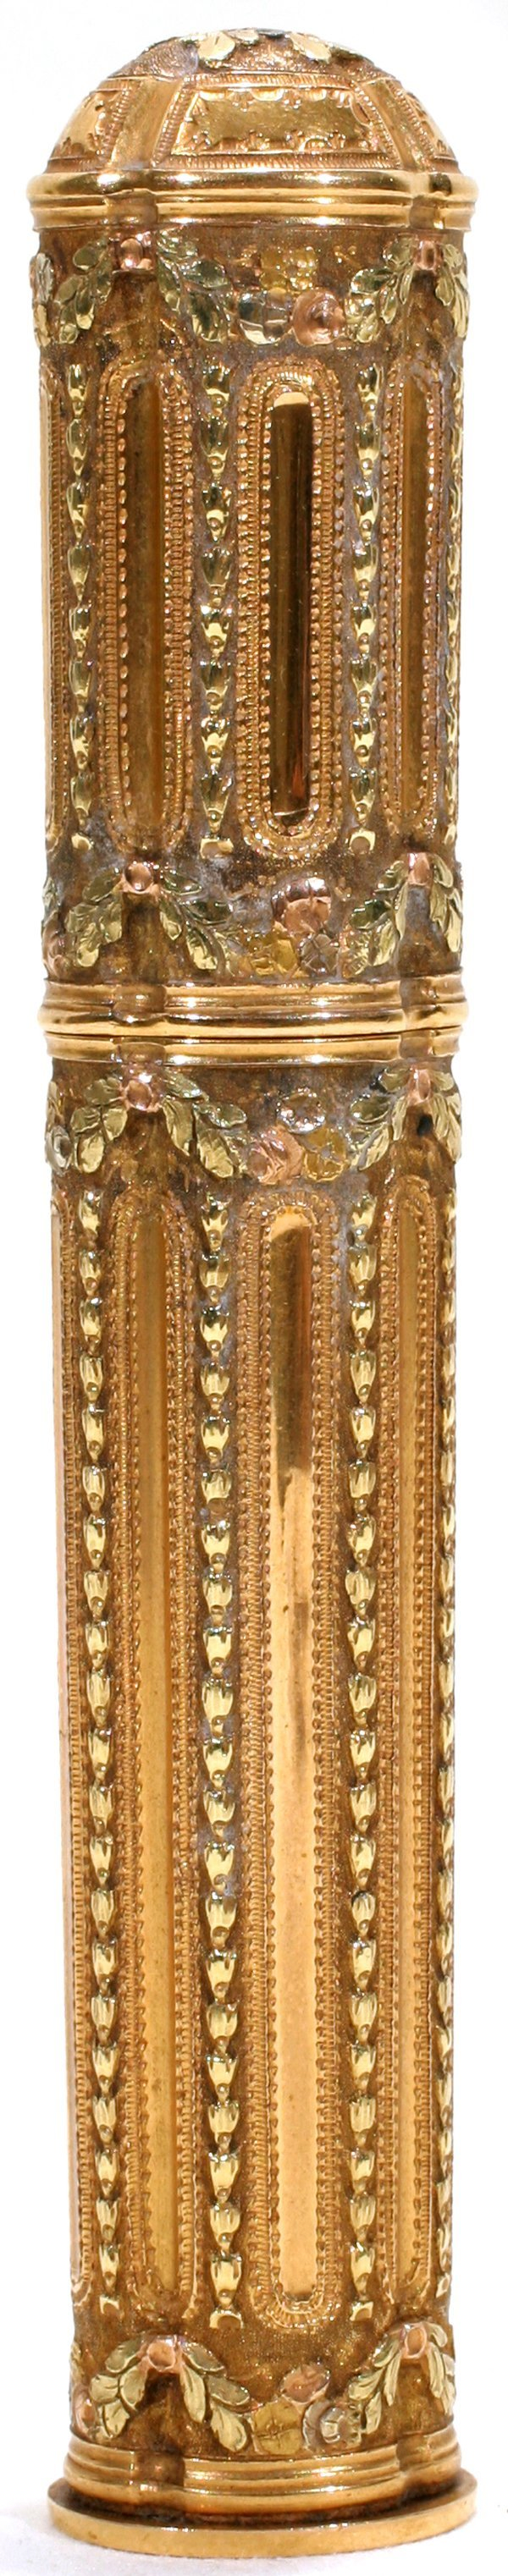 011225: GOLD FILIGREE SEALING WAX CONTAINER, L4.8""